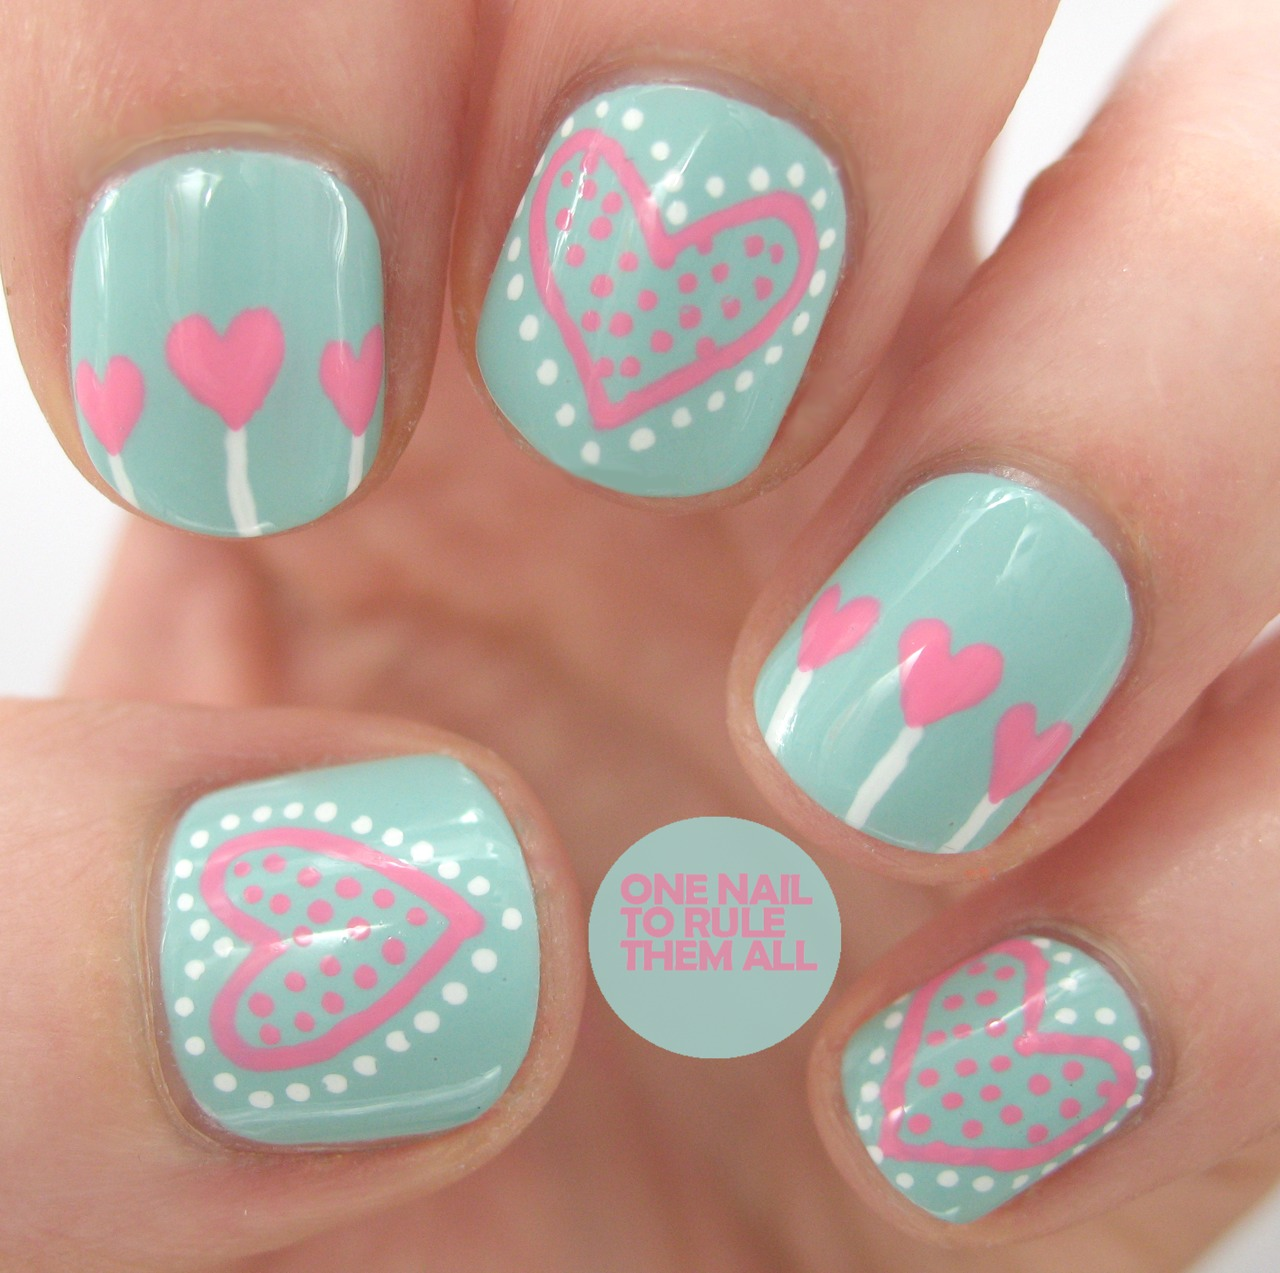 Adorable Nail Designs: Unghie Romantiche